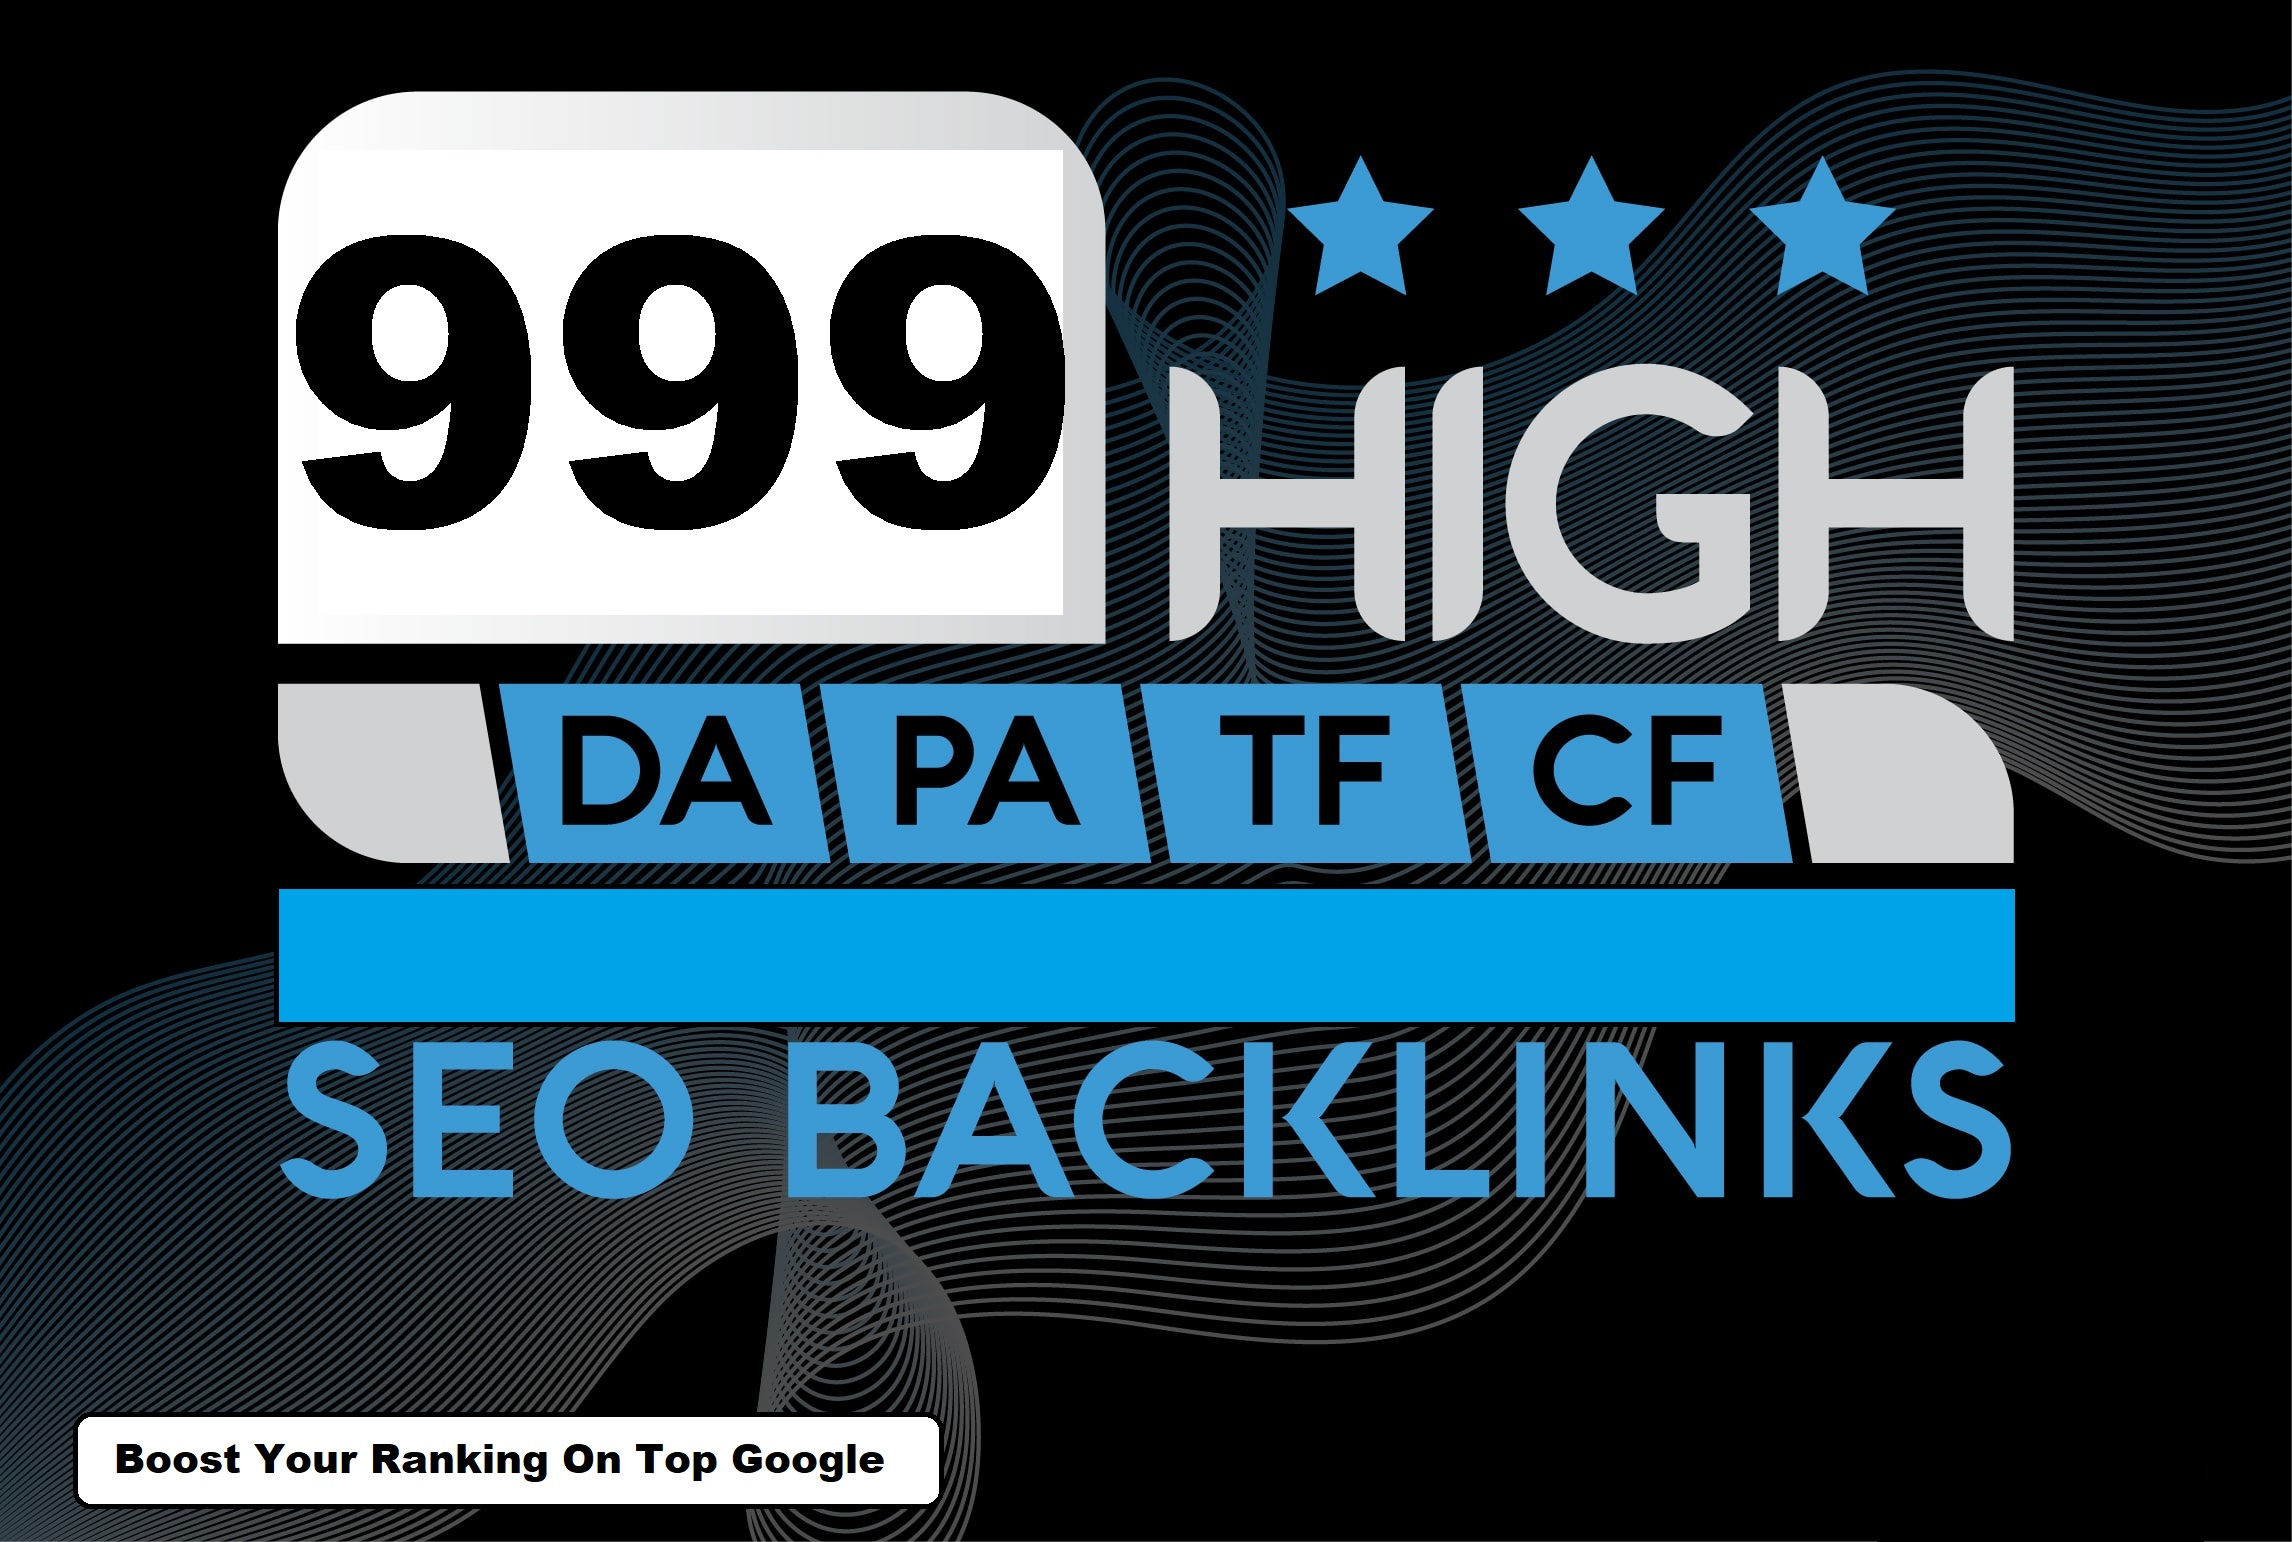 Boost Your Ranking On Top Google With 999 Permanent SEO backlinks High DA 60 80+